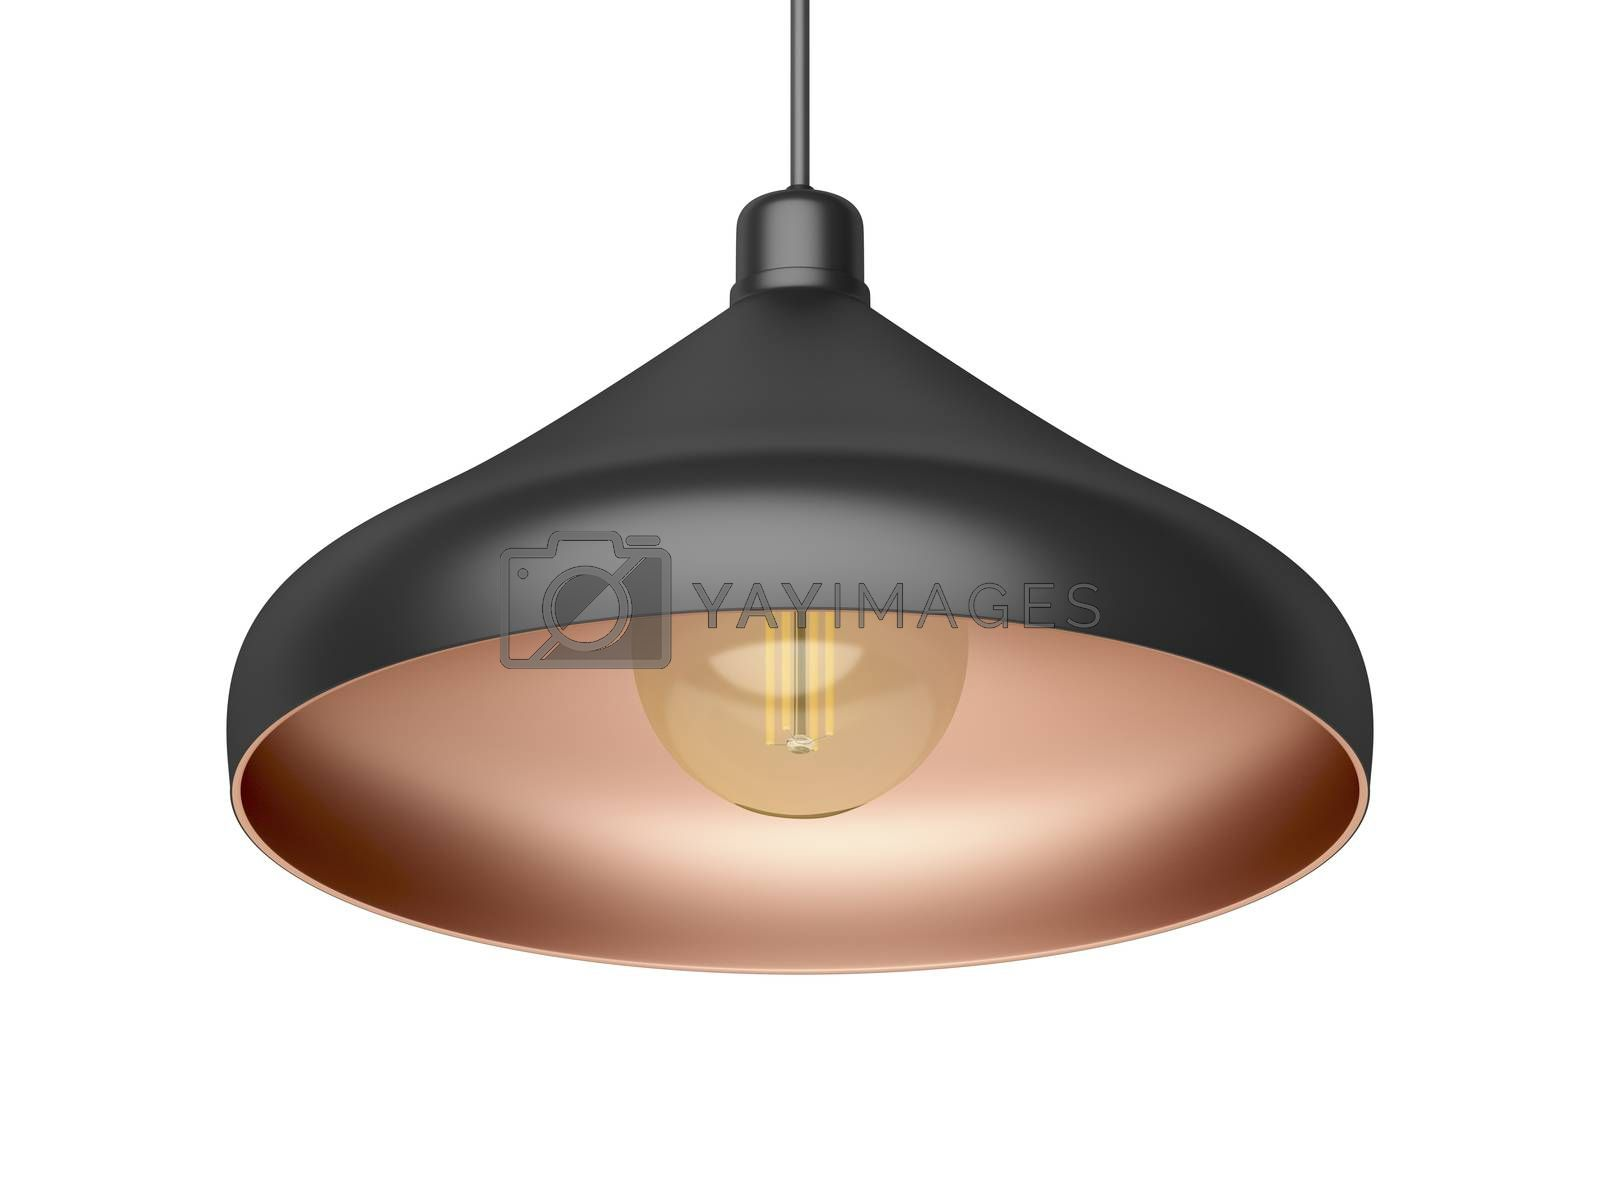 Modern designed pendant lamp with LED bulb, isolated on white background